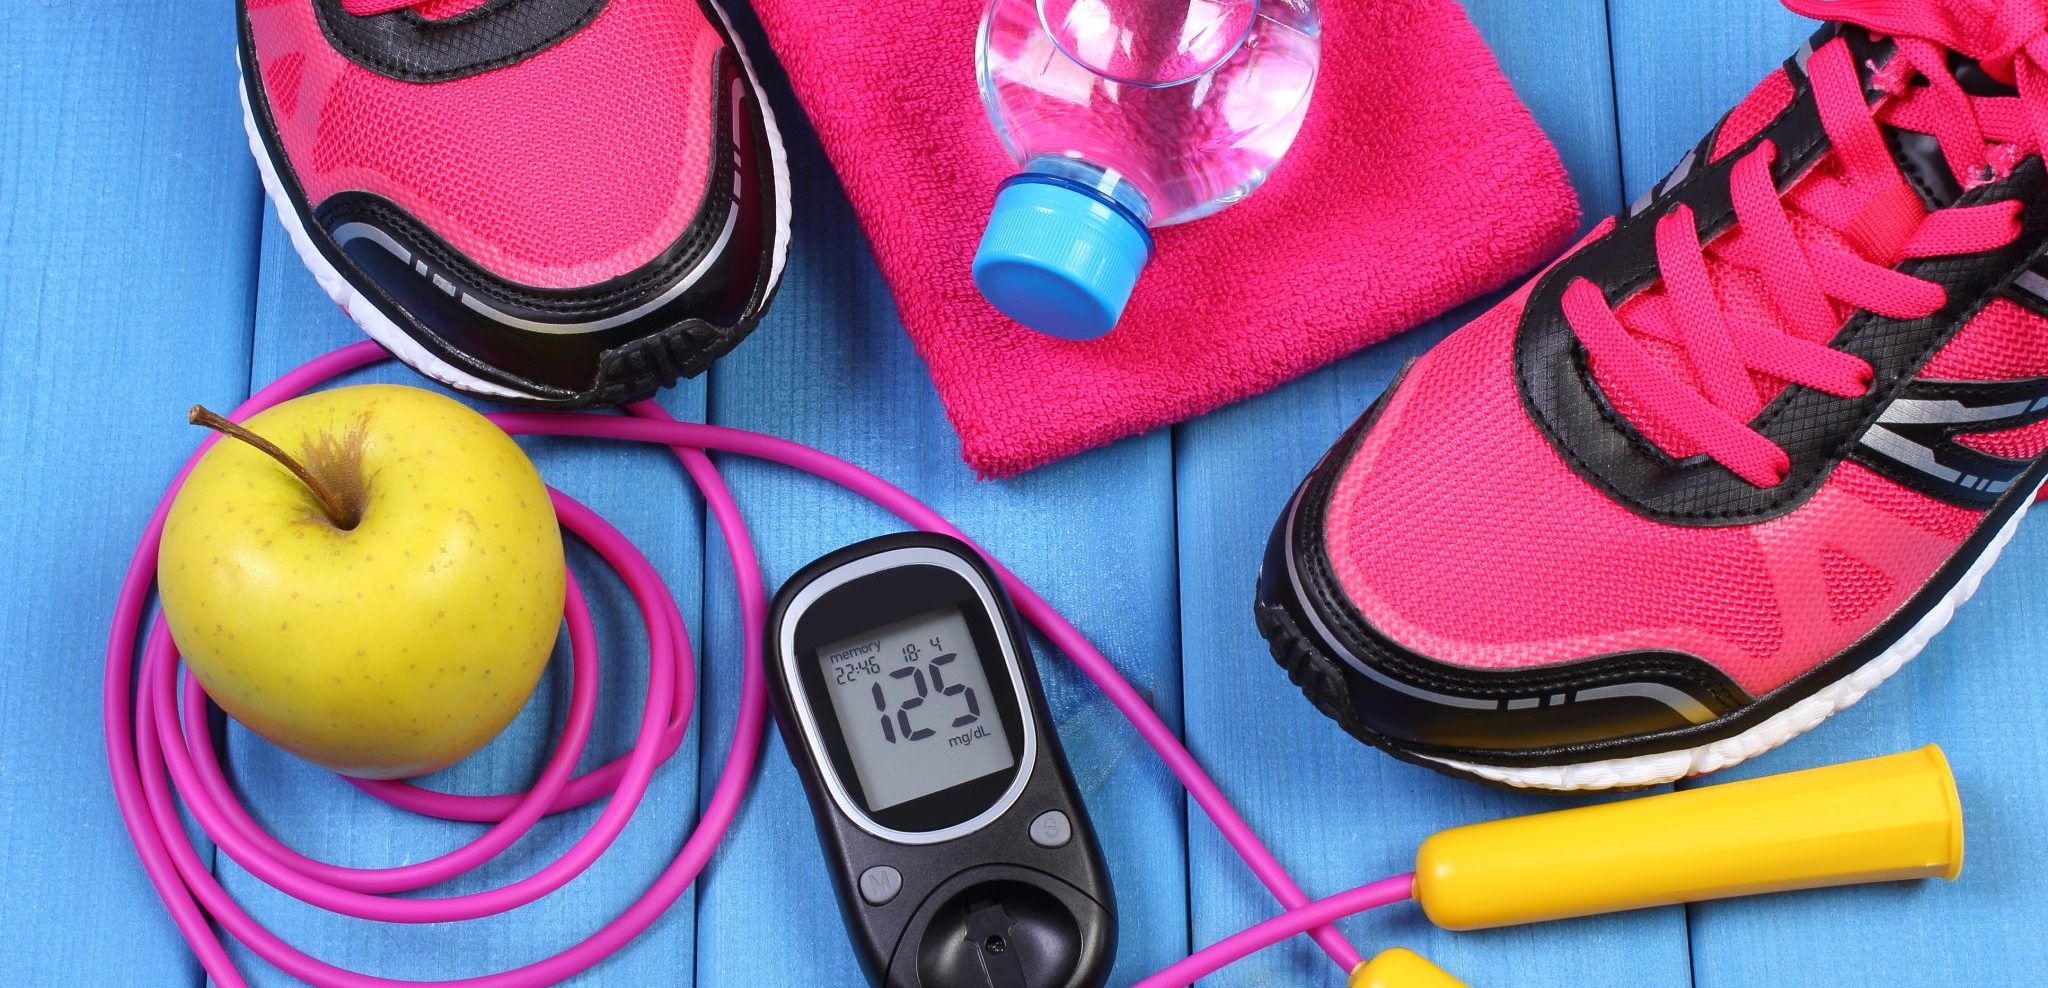 5 of the Best Exercises You Can Do If You Have Diabetes